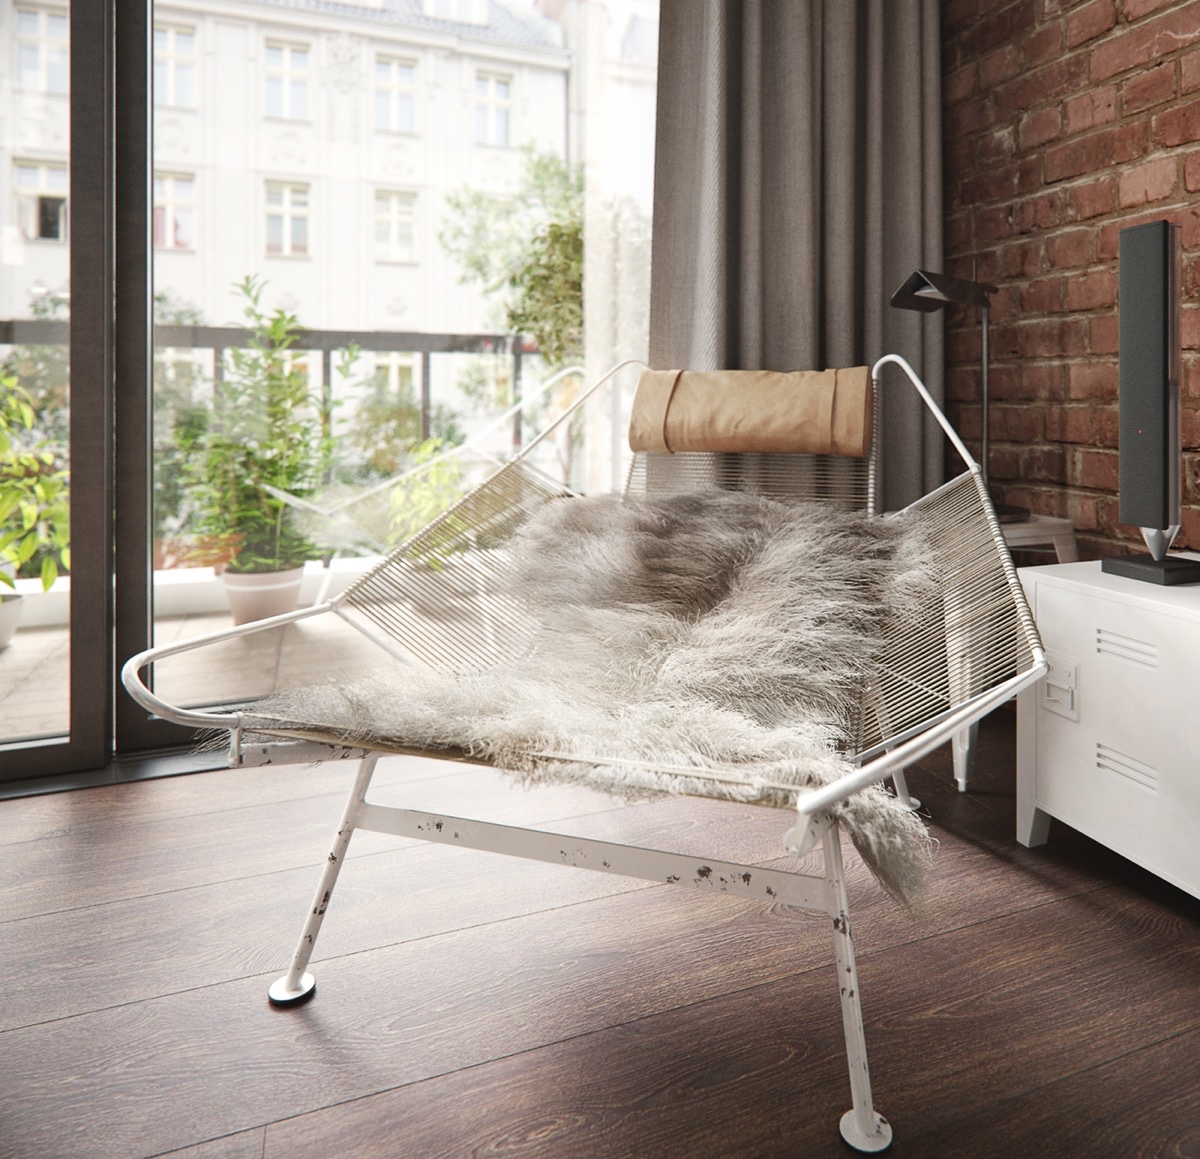 Classic Scandinavian Furniture Ideas - 10 stunning apartments that show off the beauty of nordic interior design